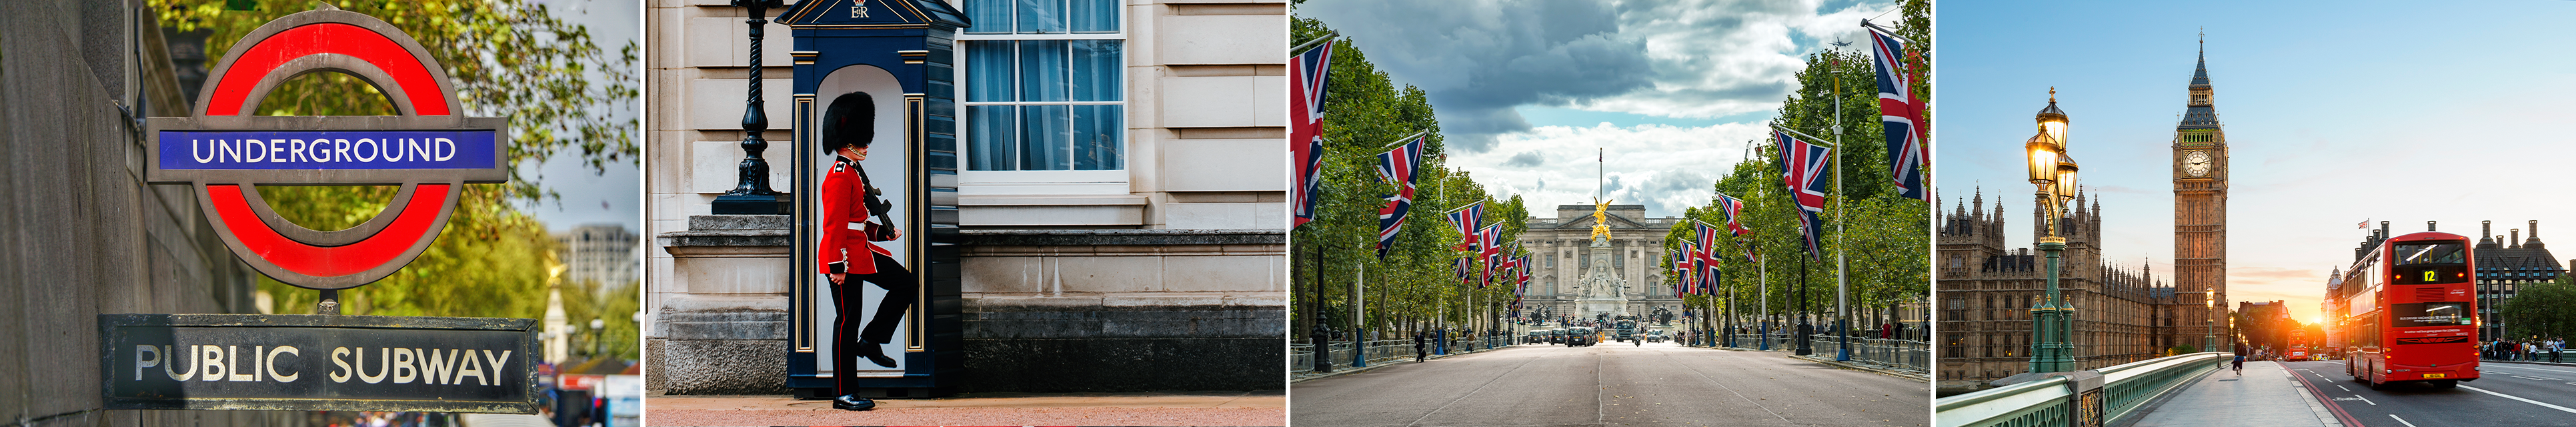 A collage of pictures including the Big Ben clock tower, a picture of a sign for the London Underground subway, one of Buckingham Palace and also one of the guards on duty